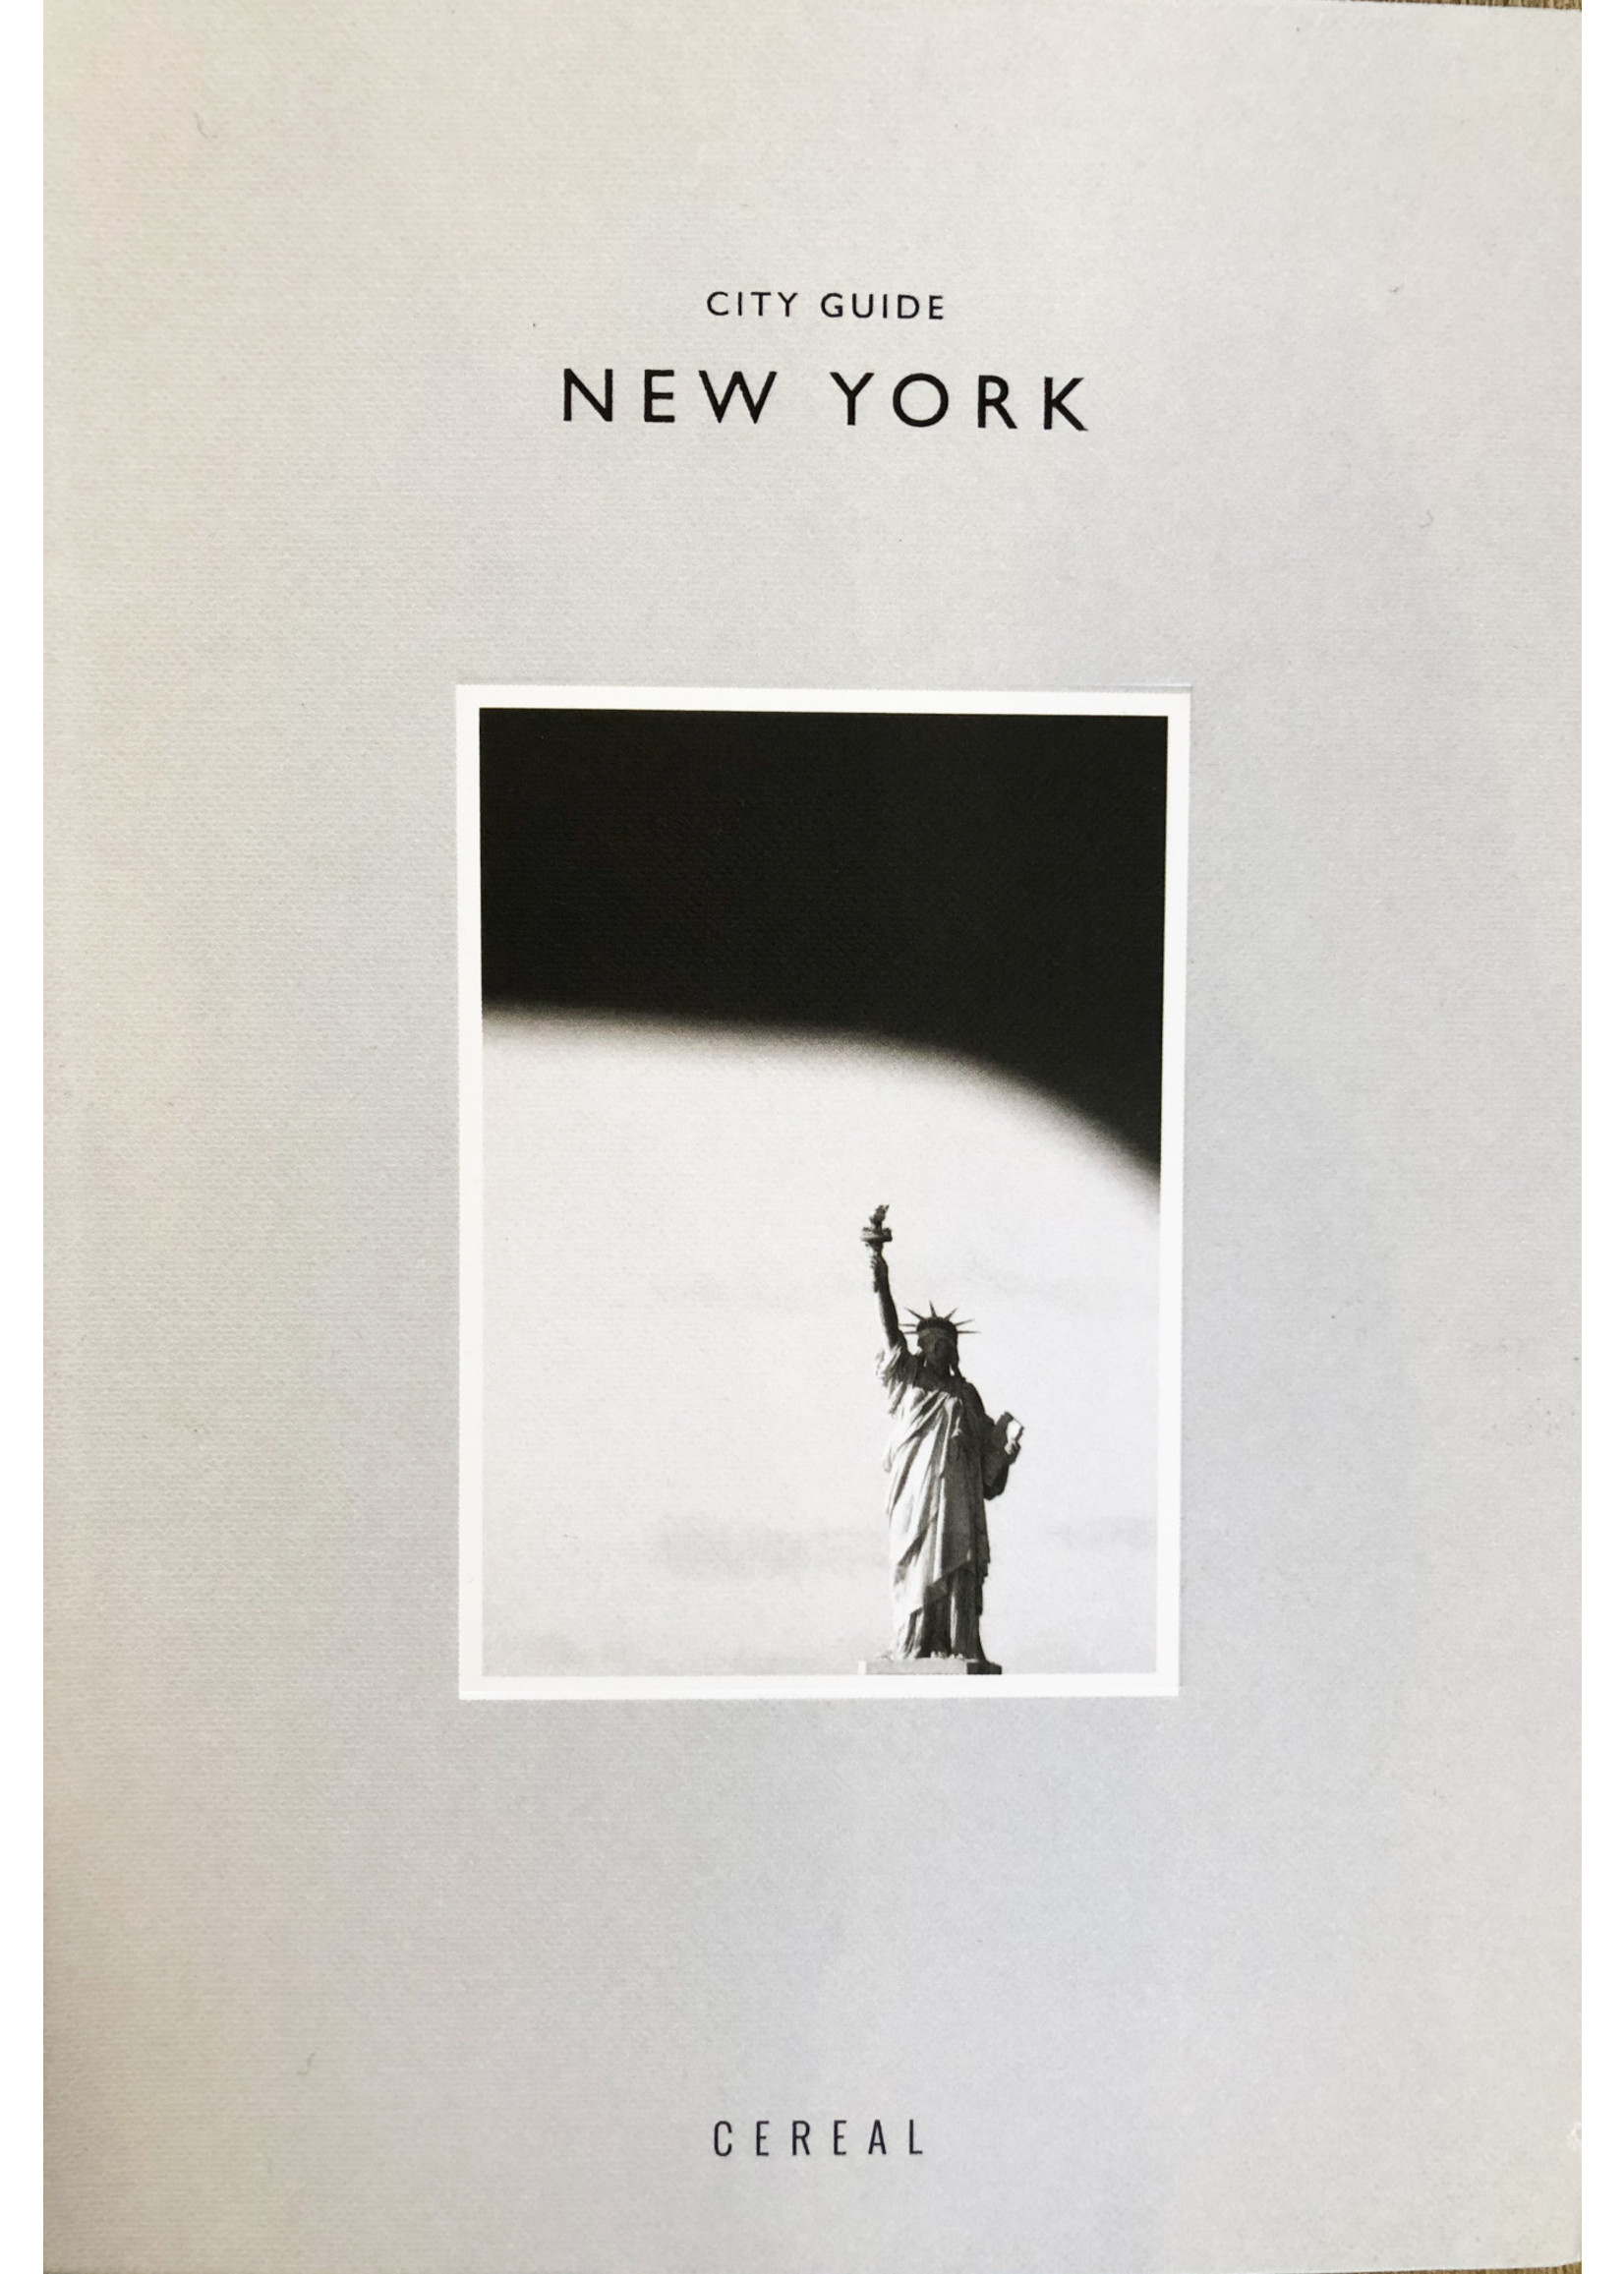 Book - Cereal - New York